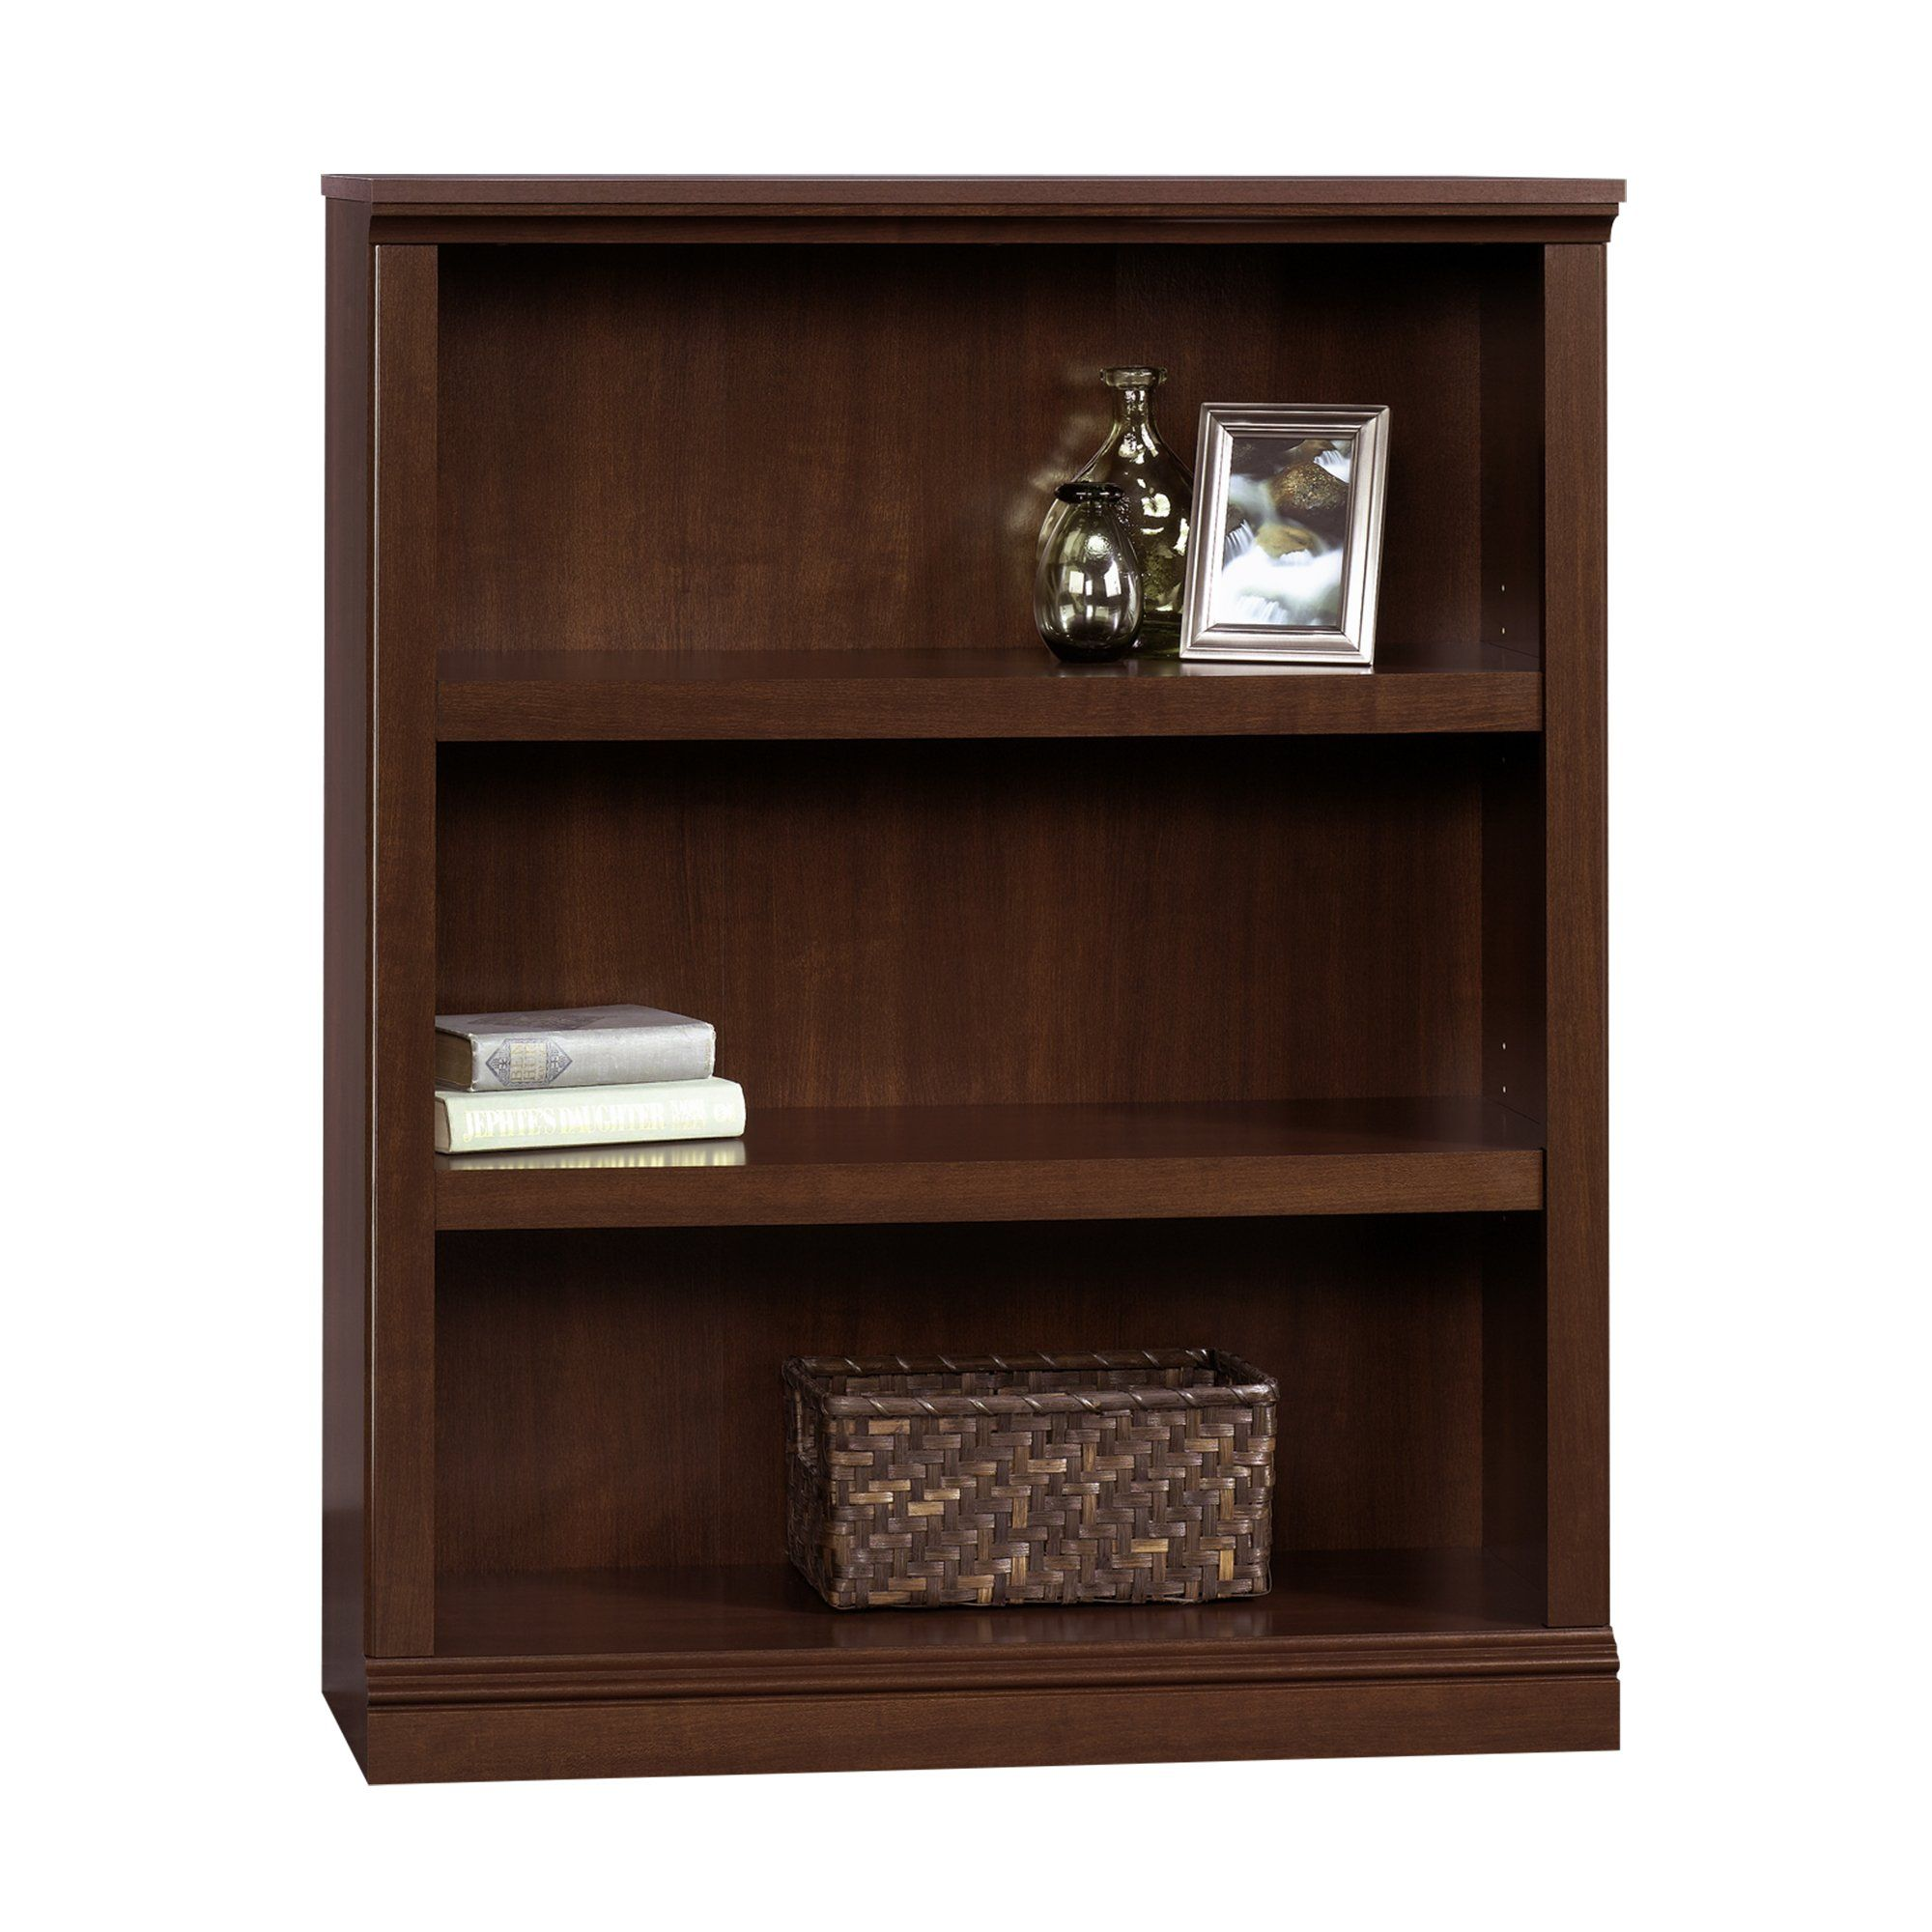 interior home luxury top furniture at to design bookcases decor hill photo stunning bookcase trends color heritage sauder idea